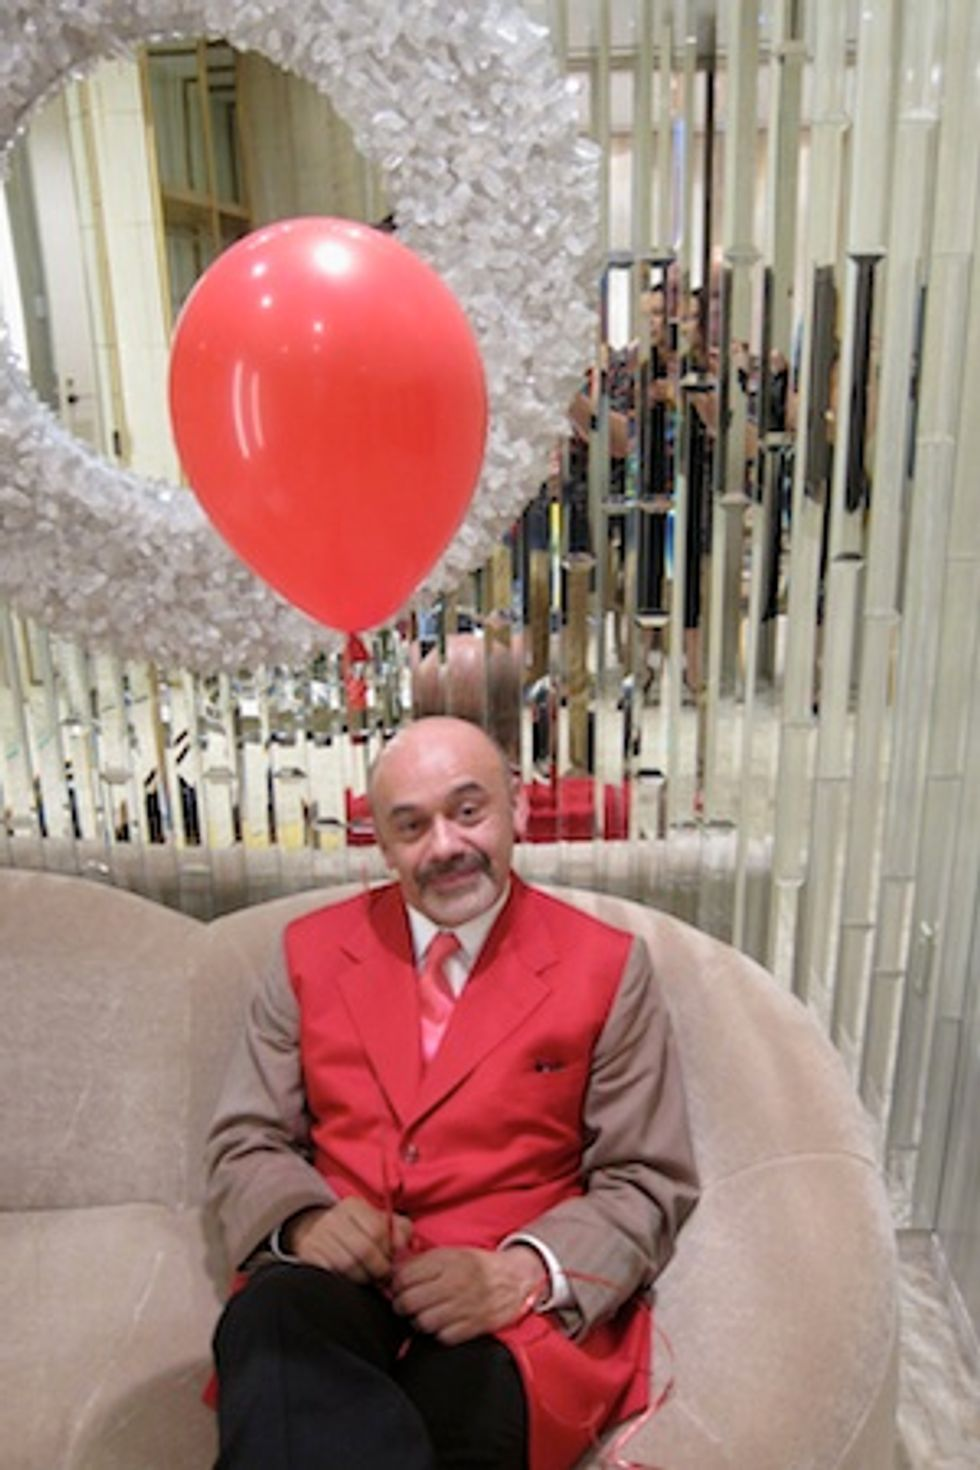 Christian Louboutin On Making His Rapping Debut and Why He'll Never Get Sick of Heels